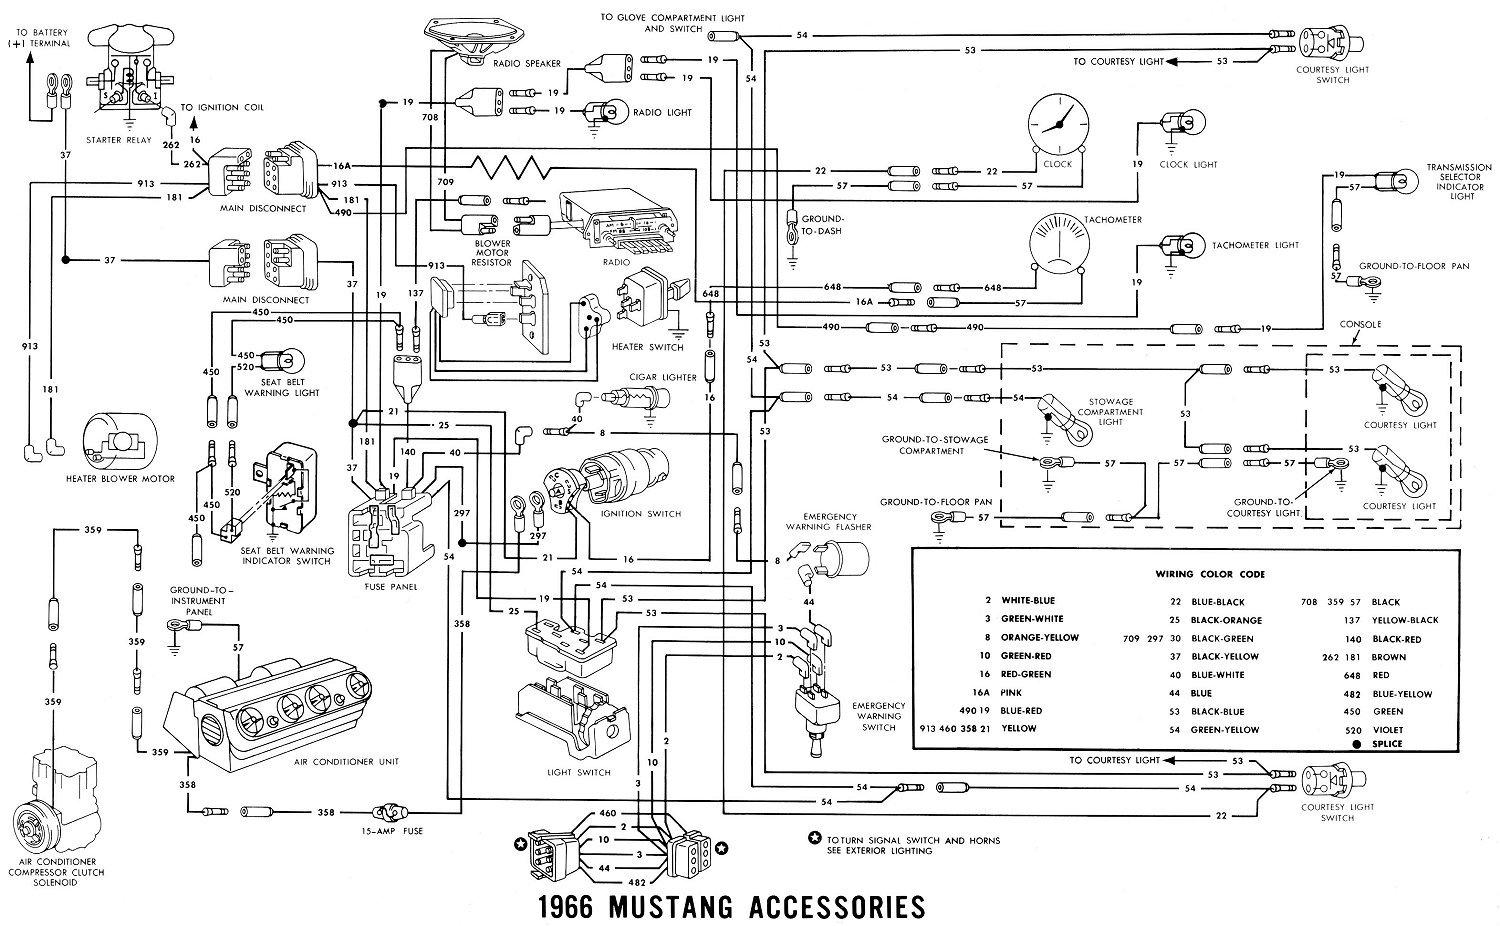 66acces1 1970 mustang wiring diagram pdf 1967 mustang wiring diagram pdf 1969 mustang dash wiring diagram at fashall.co